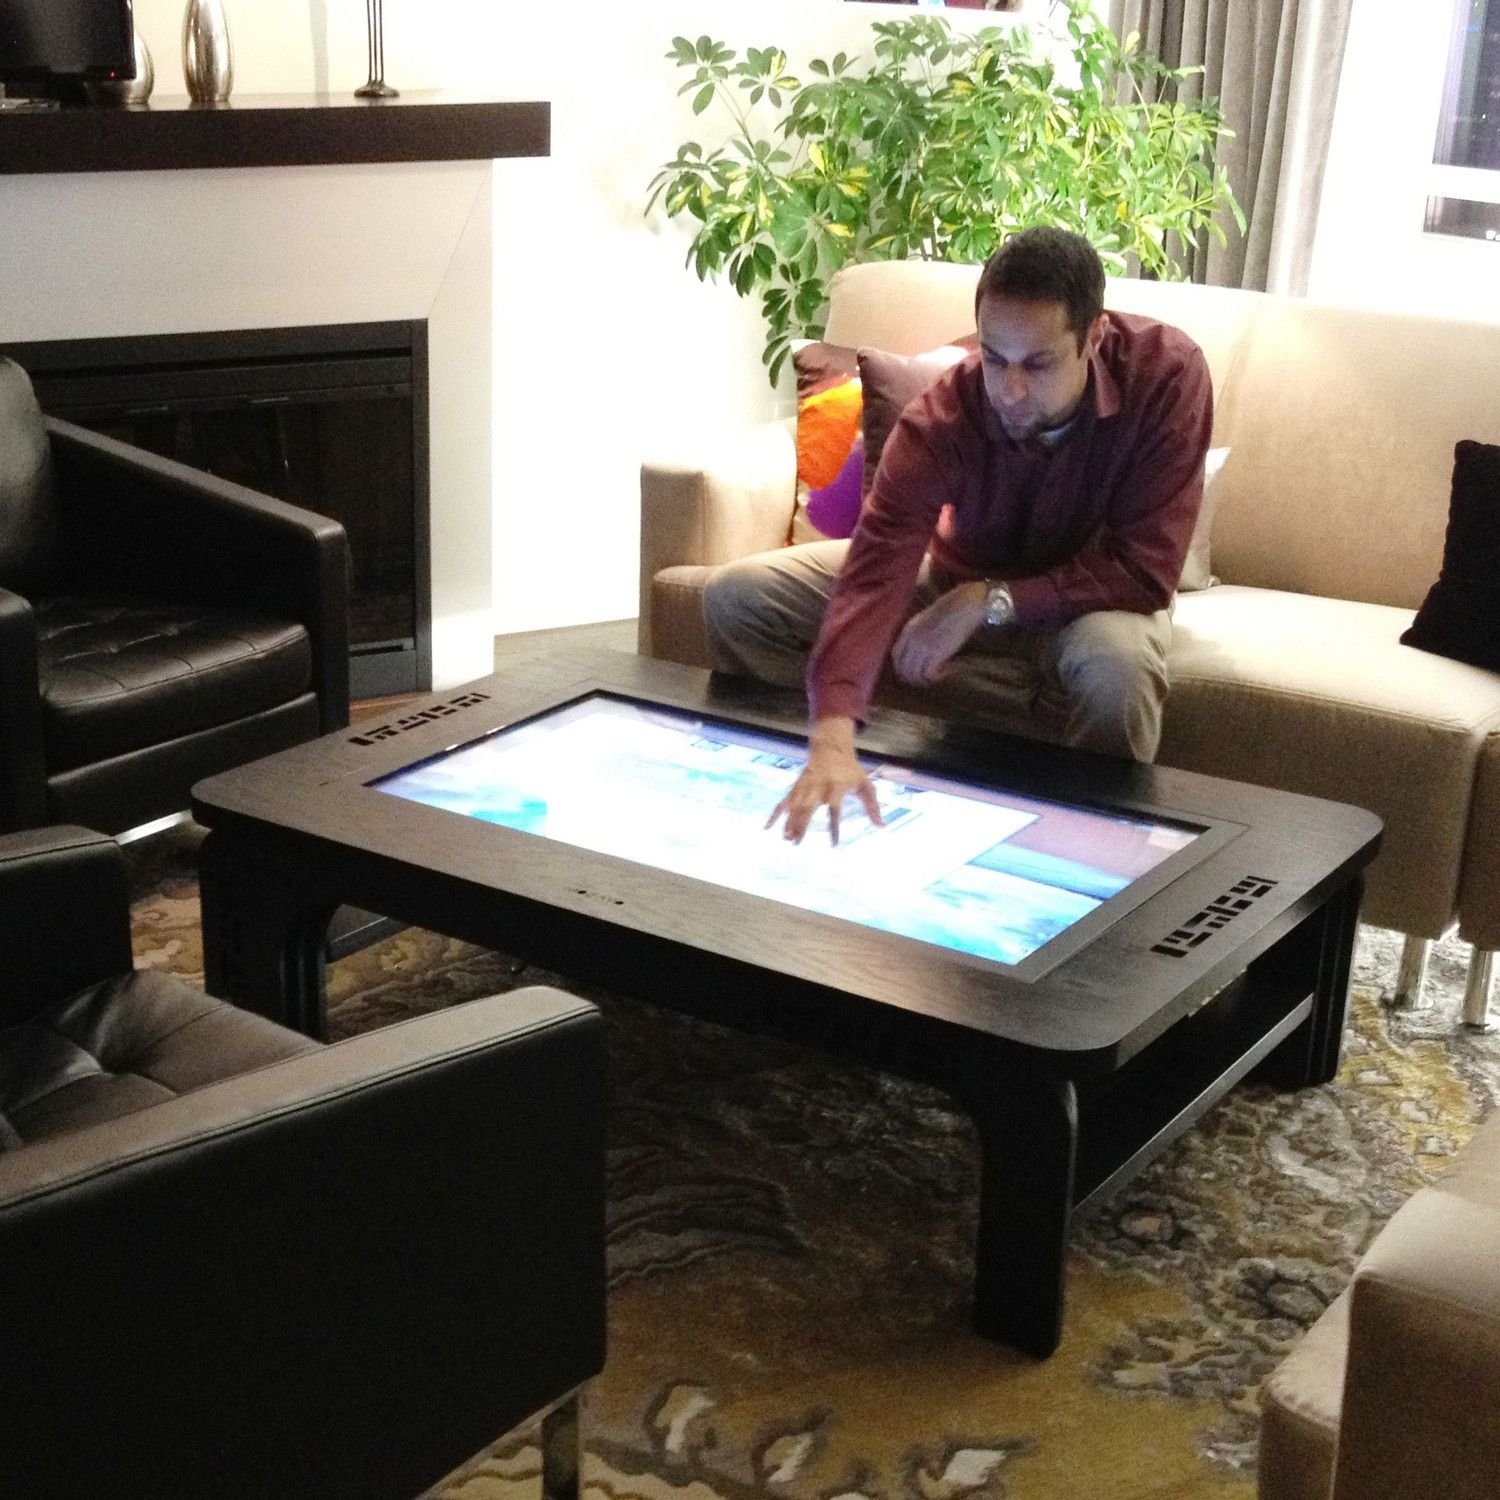 Touchscreen Desk Already Exists & es With A $7 000 Price Tag